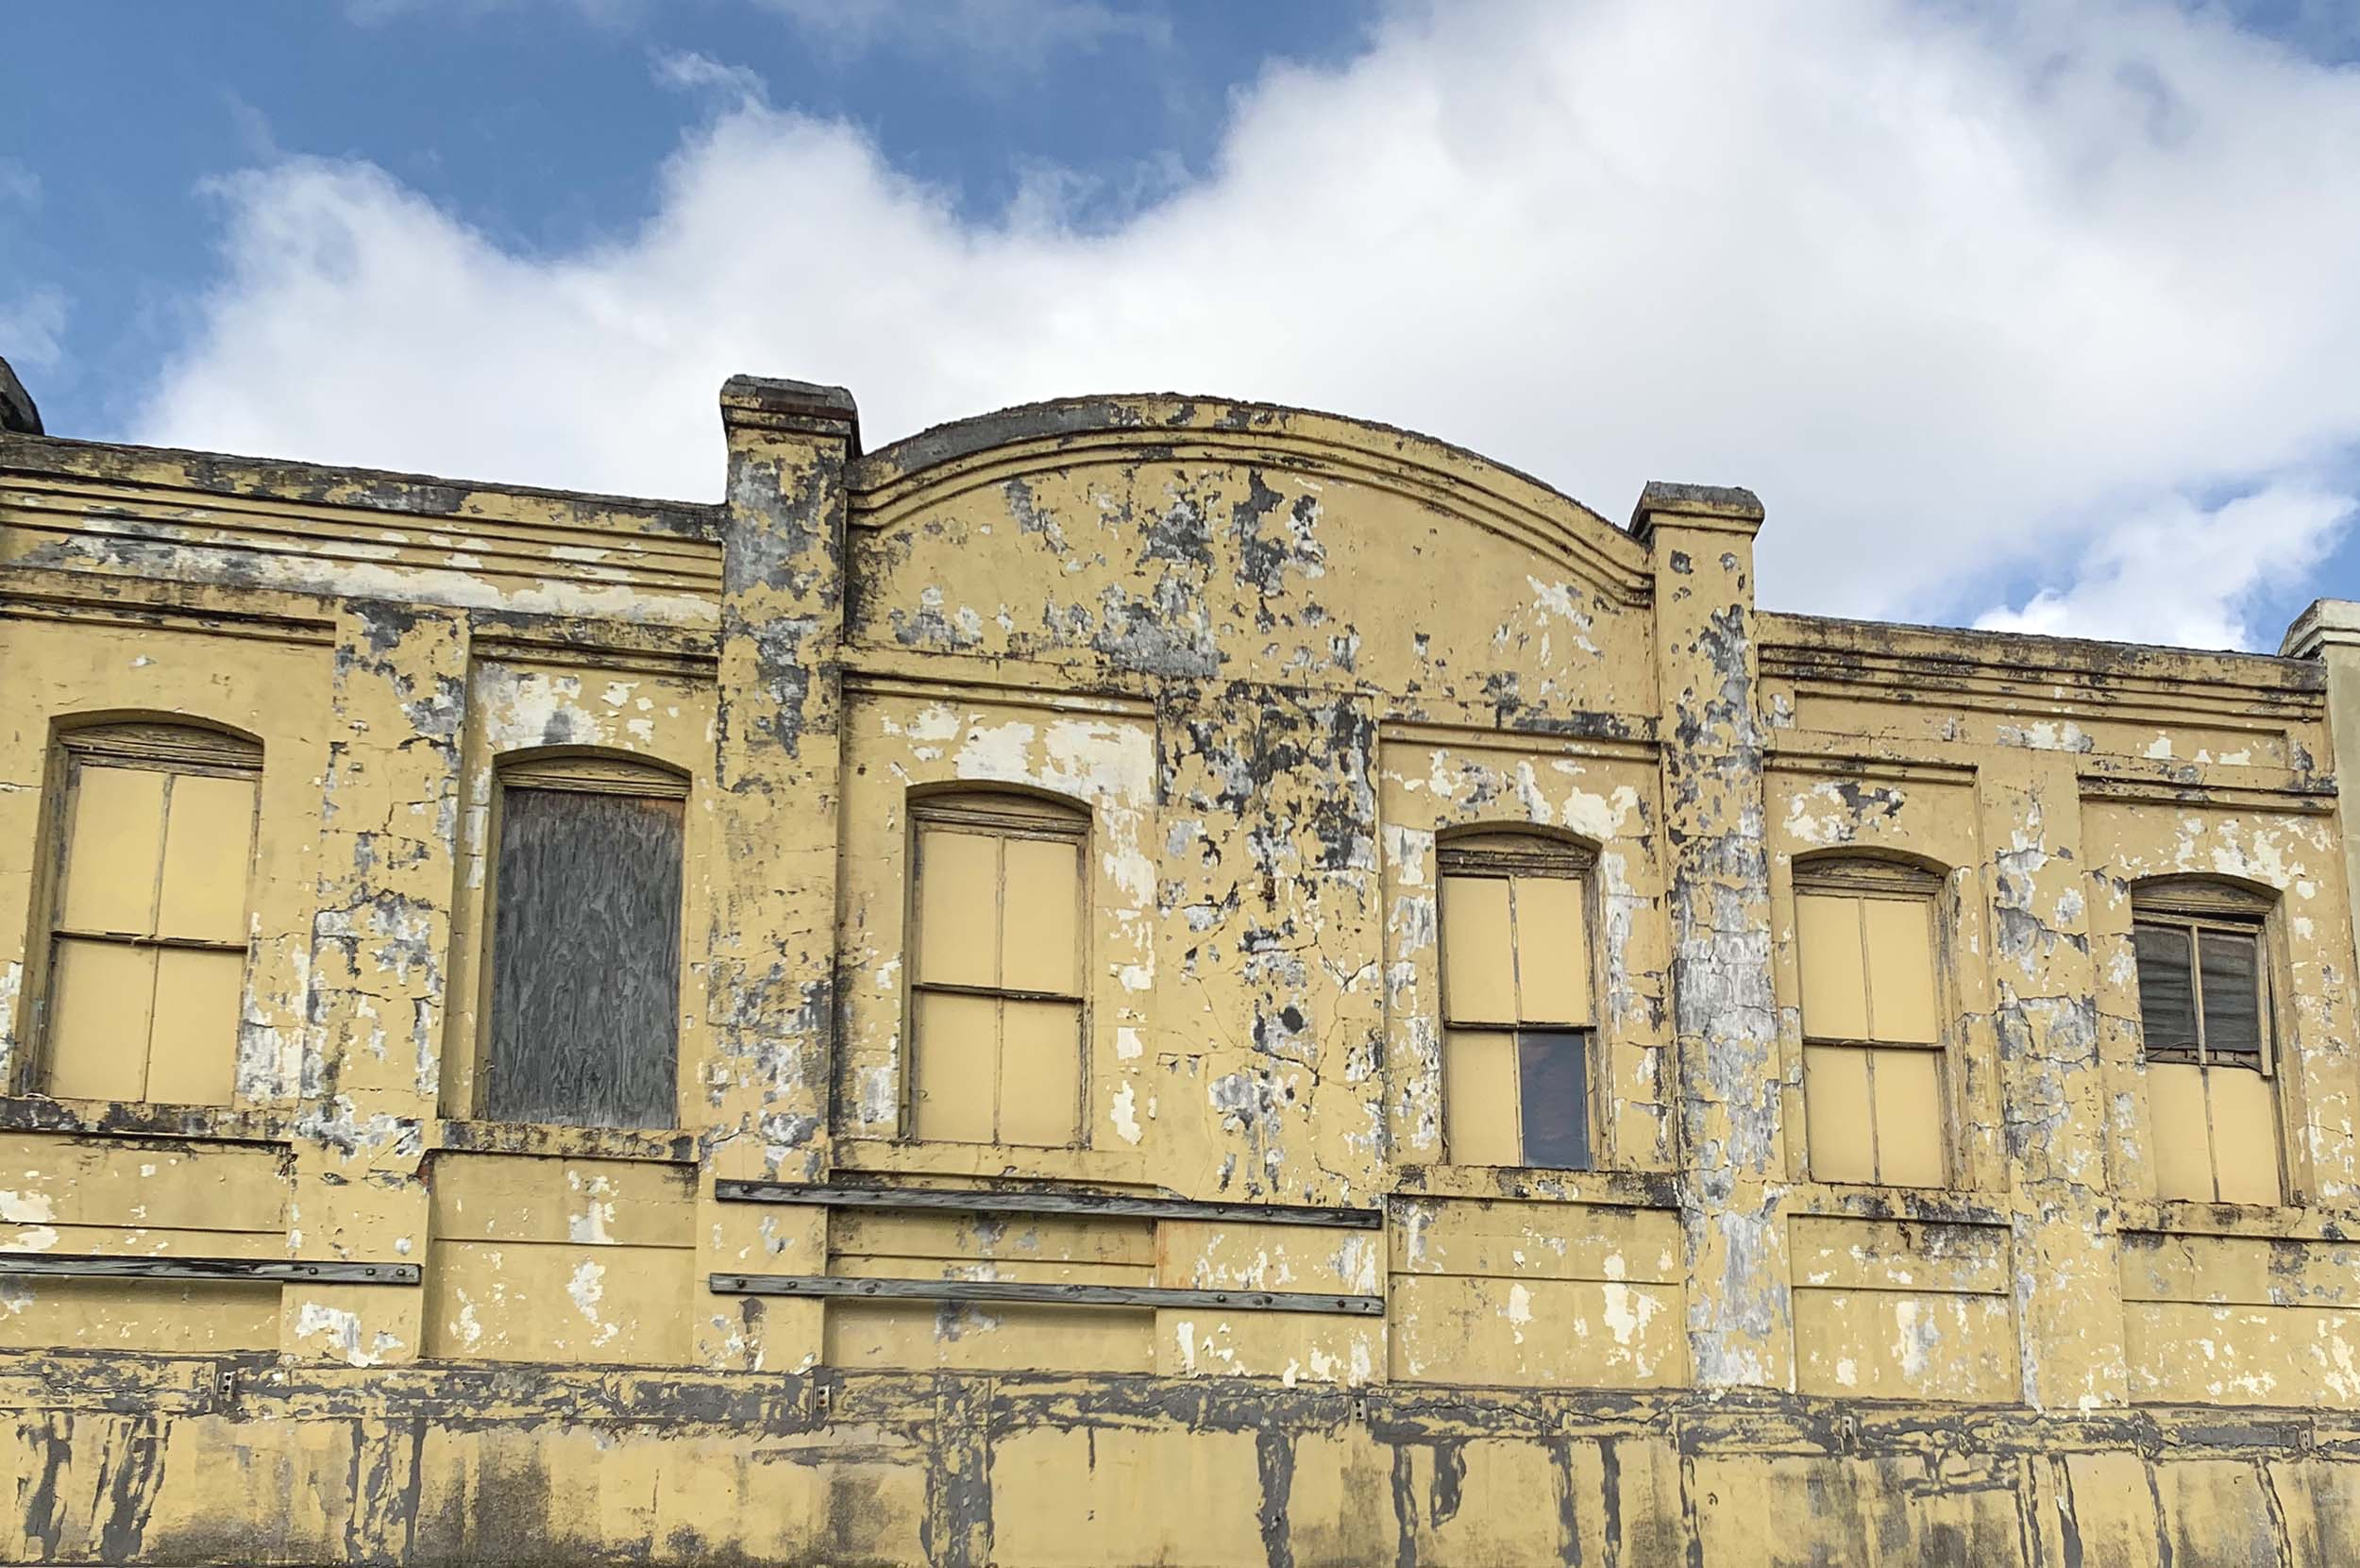 Facade of abandoned building in Jeanerette, Louisiana.